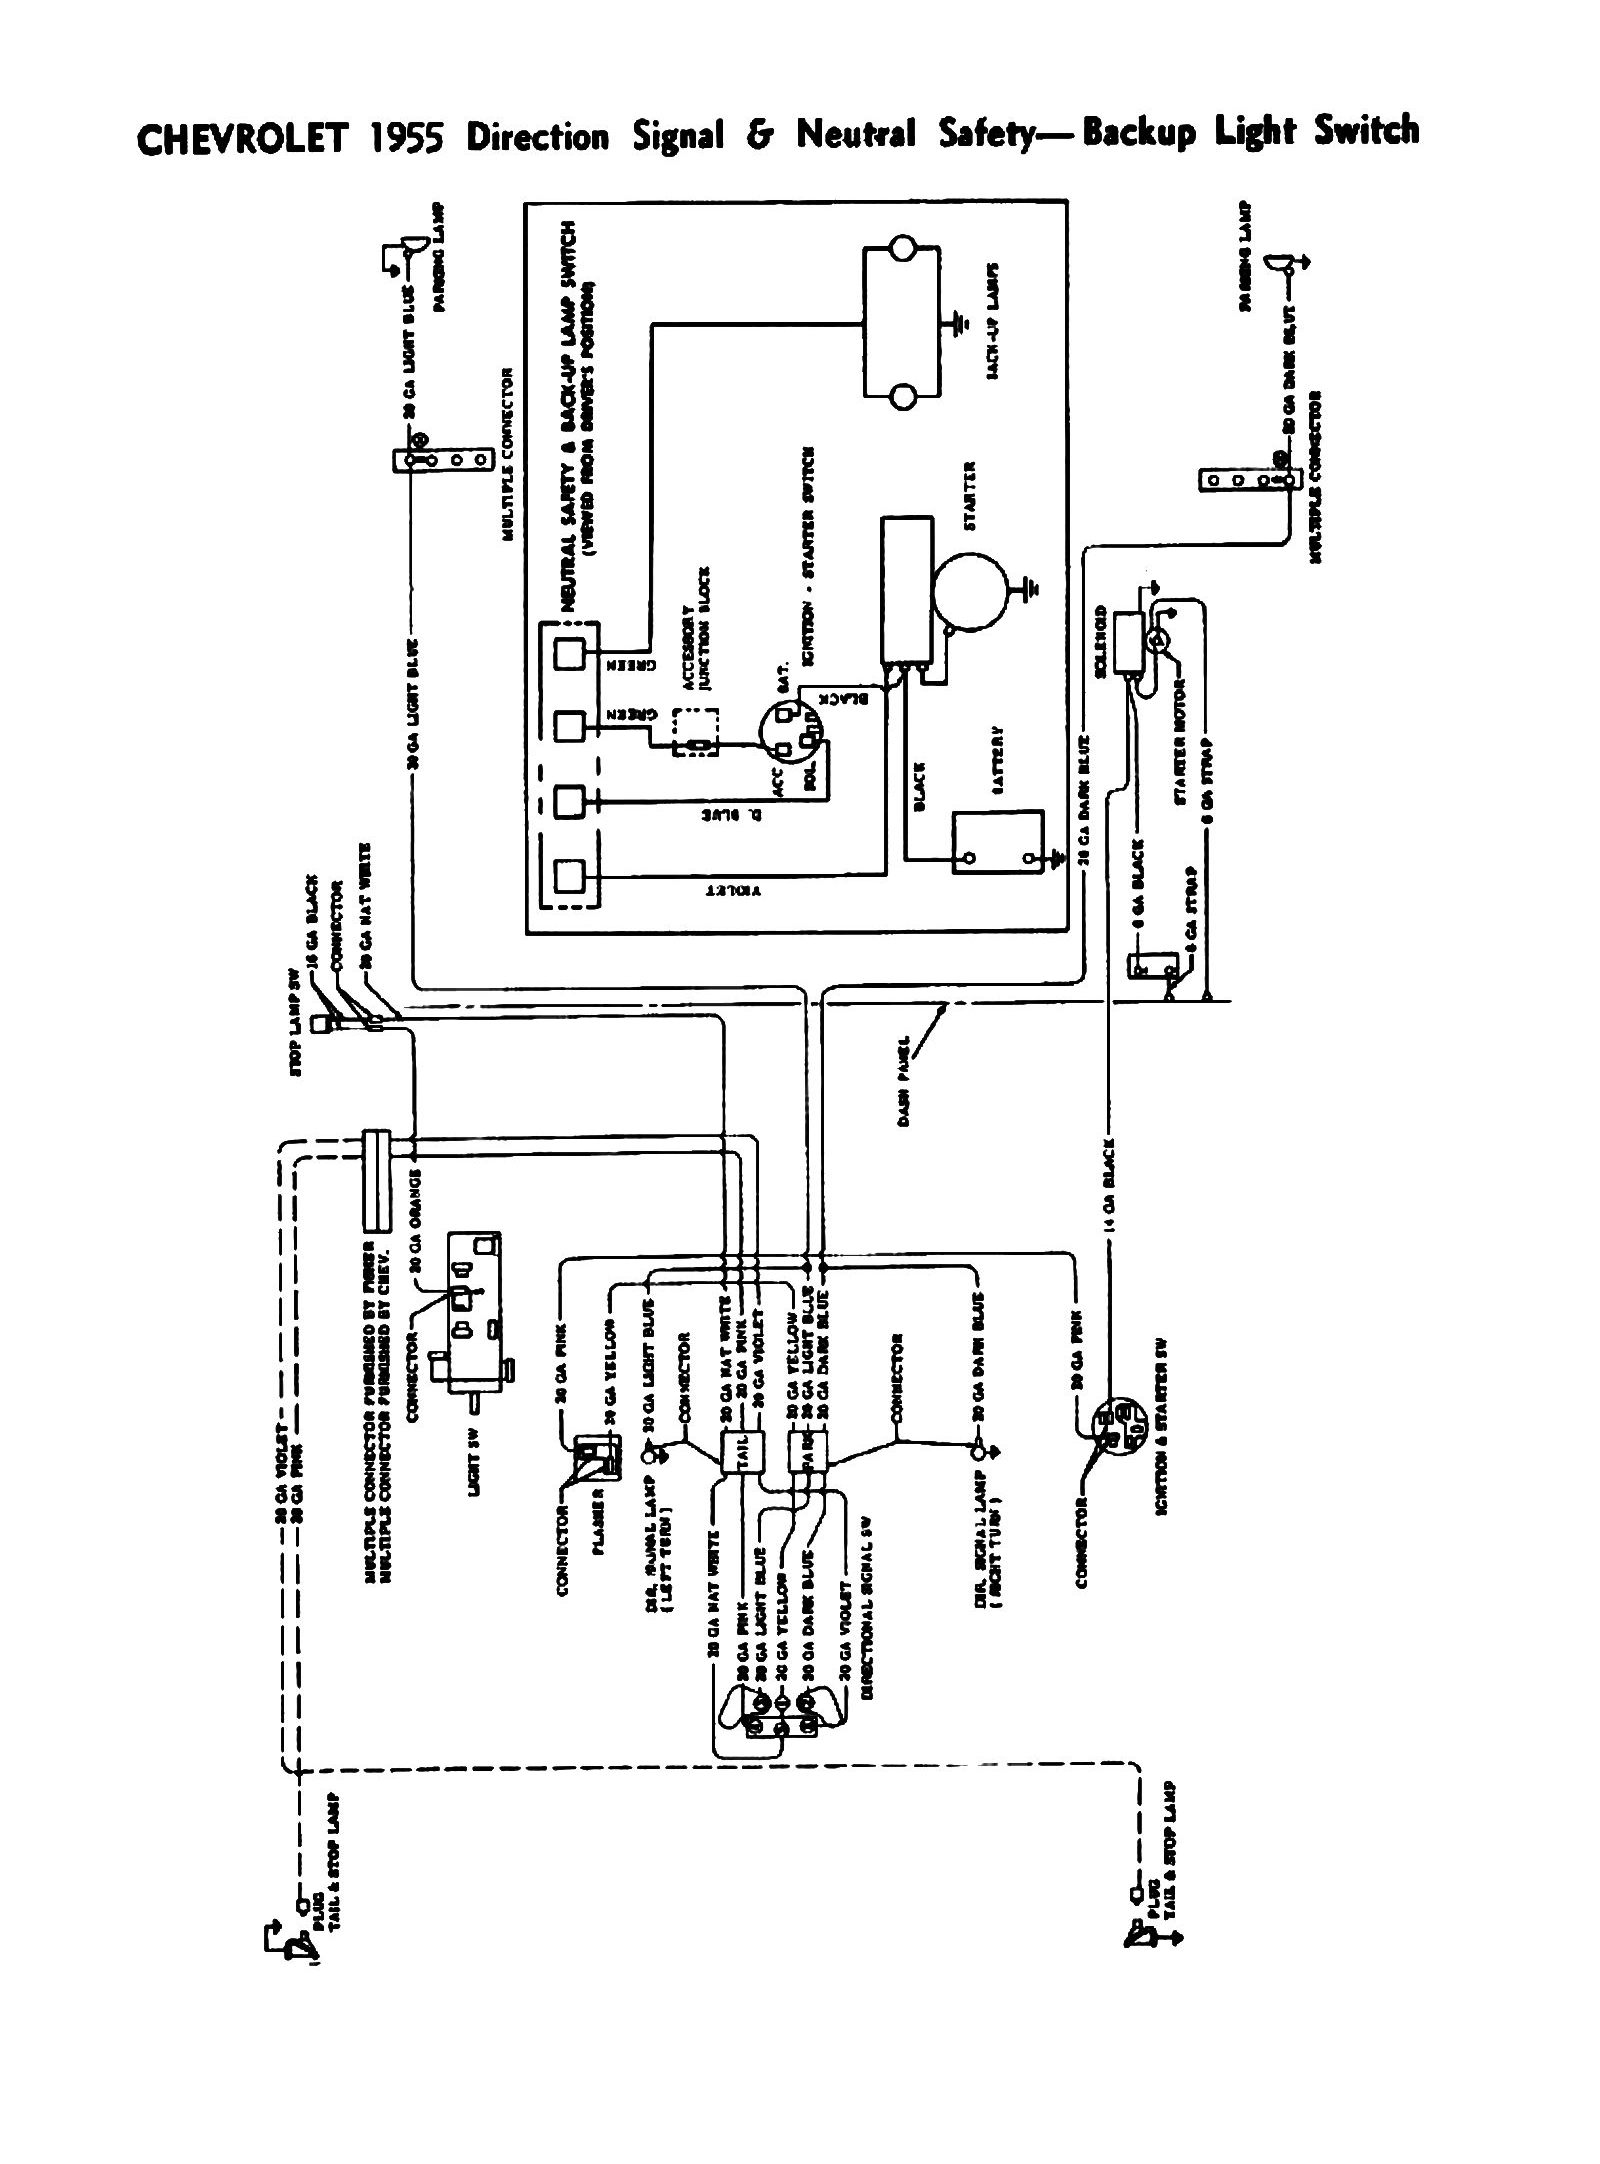 1951 Chevy Ignition Switch Wiring Diagram Schematic Free Typical Turn Signal Diagrams Source Rh 5 17 Logistra Net De